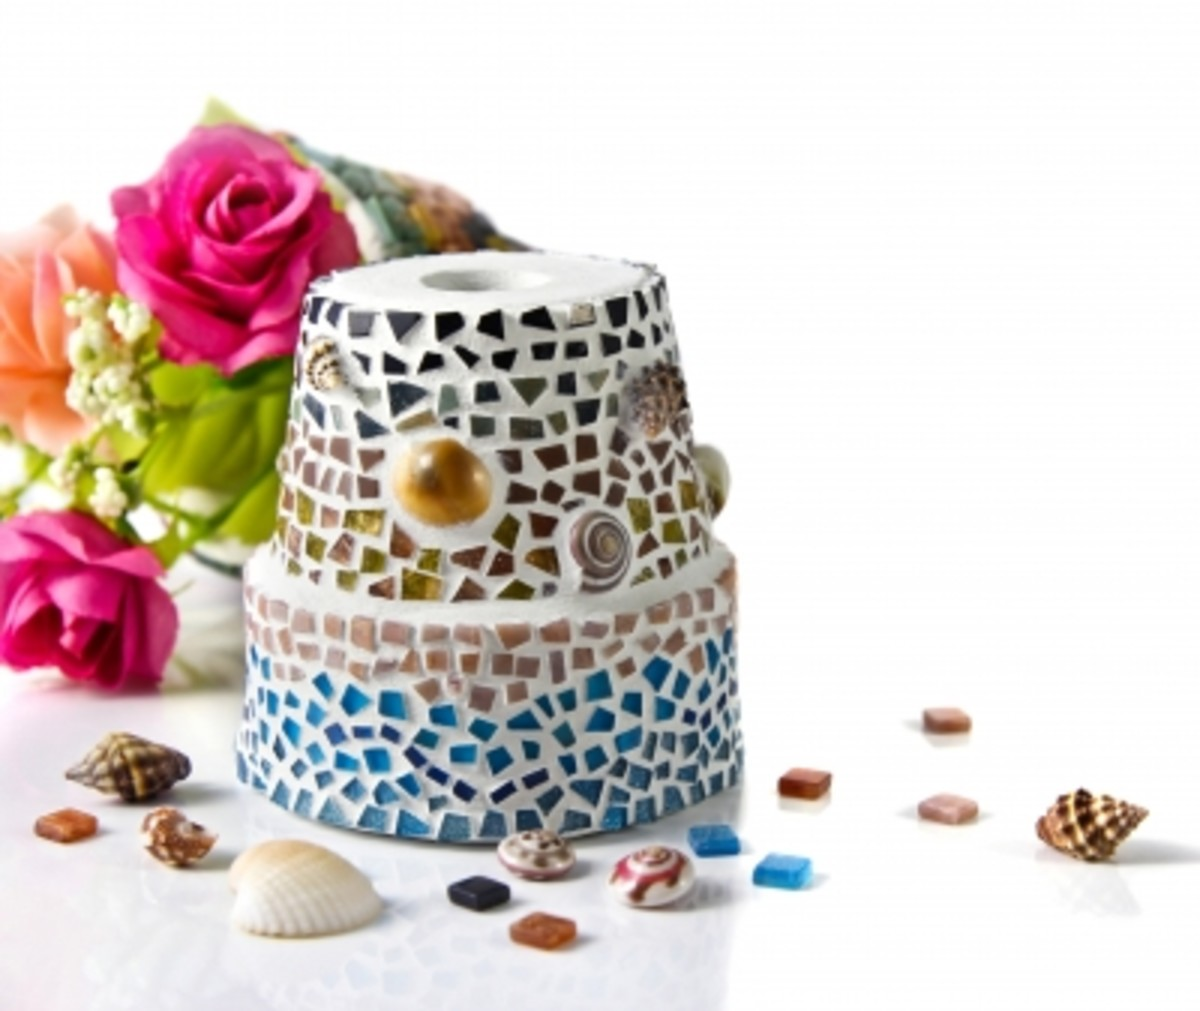 Children love to decorate flower pots.  Inexpensive, variety of sizes and choices of glass.  Available at craft stores everywhere. Grandmas love this gift.